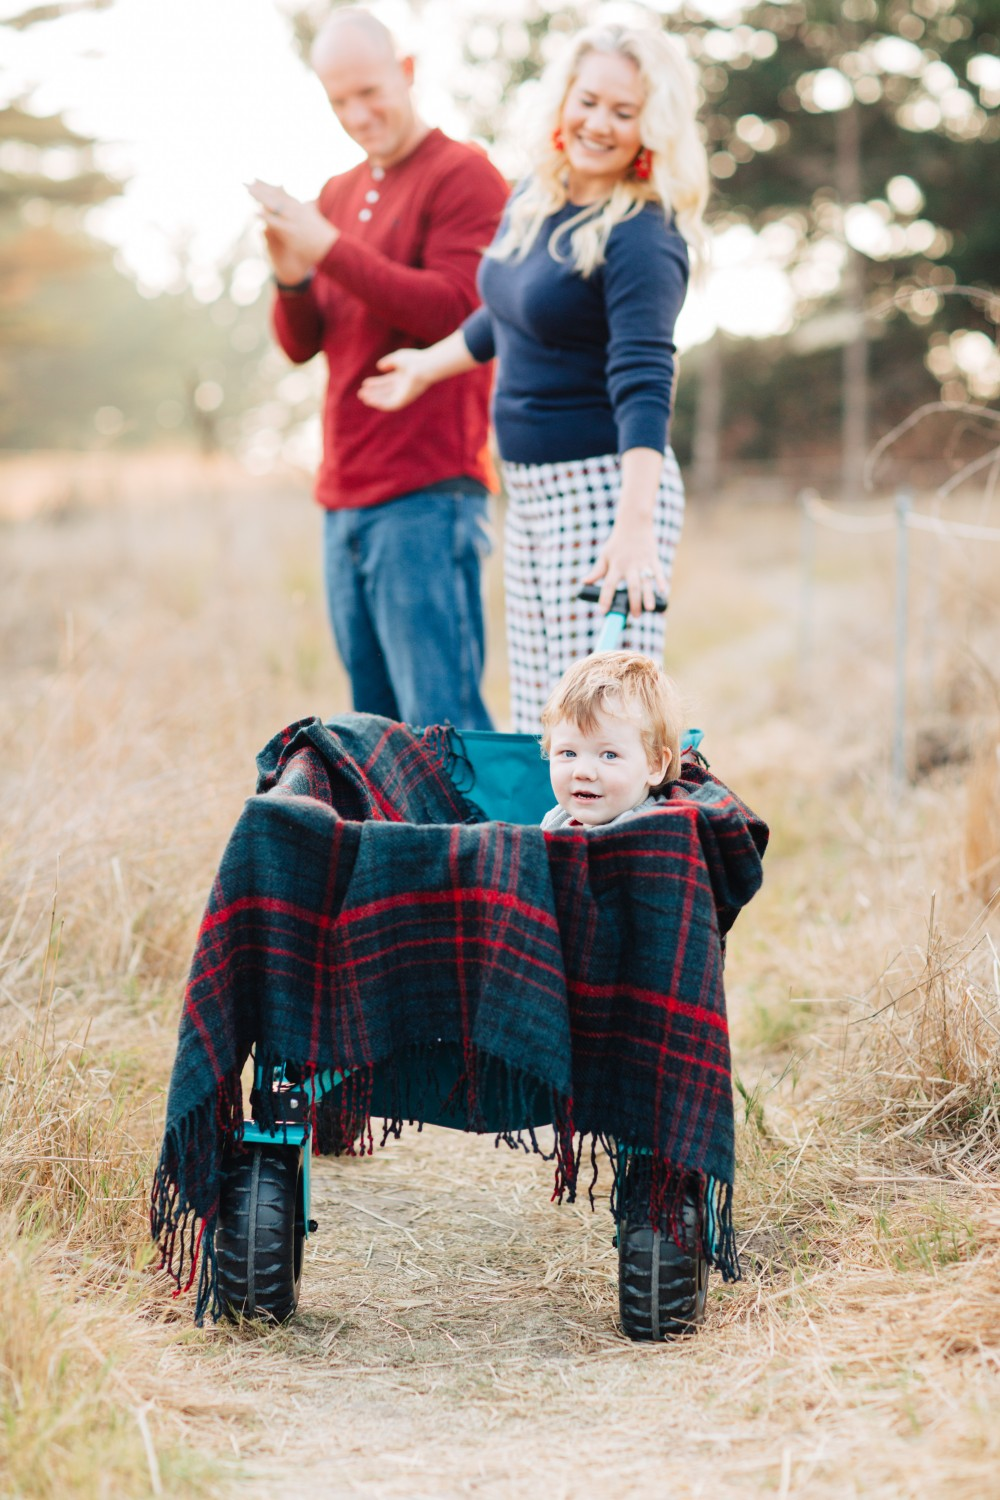 Family Holiday Card Photoshoot Toddler Boy Photo Inspiration - Have Need Want